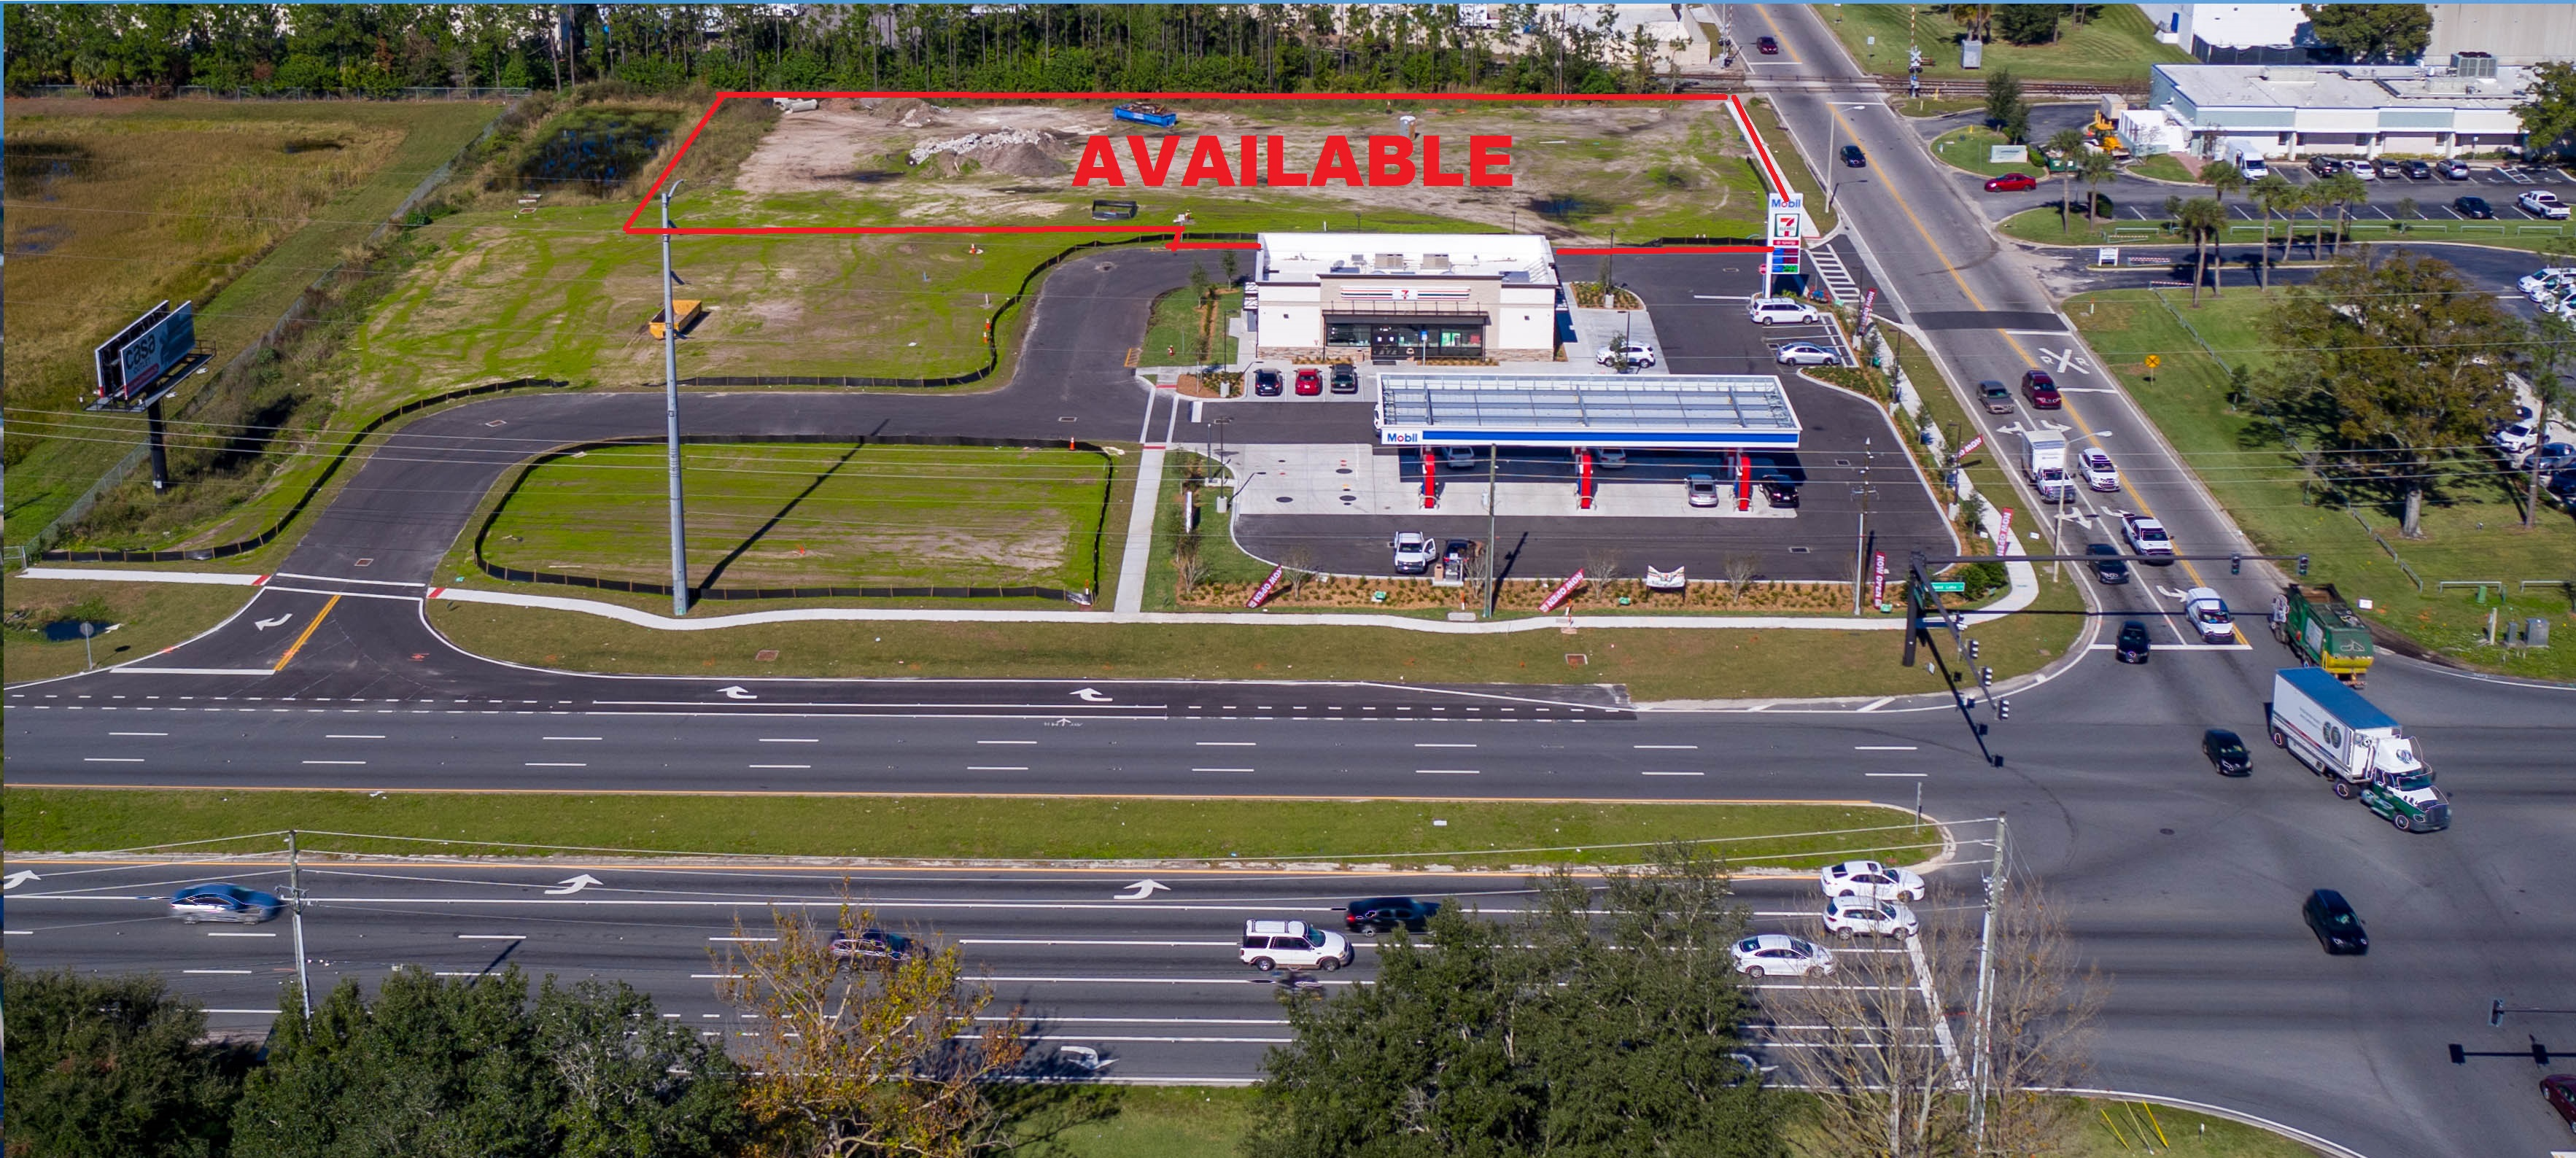 1.67 ACRE SITE WITH ON-SITE RETENTION DEVELOPMENT OPPORTUNITY